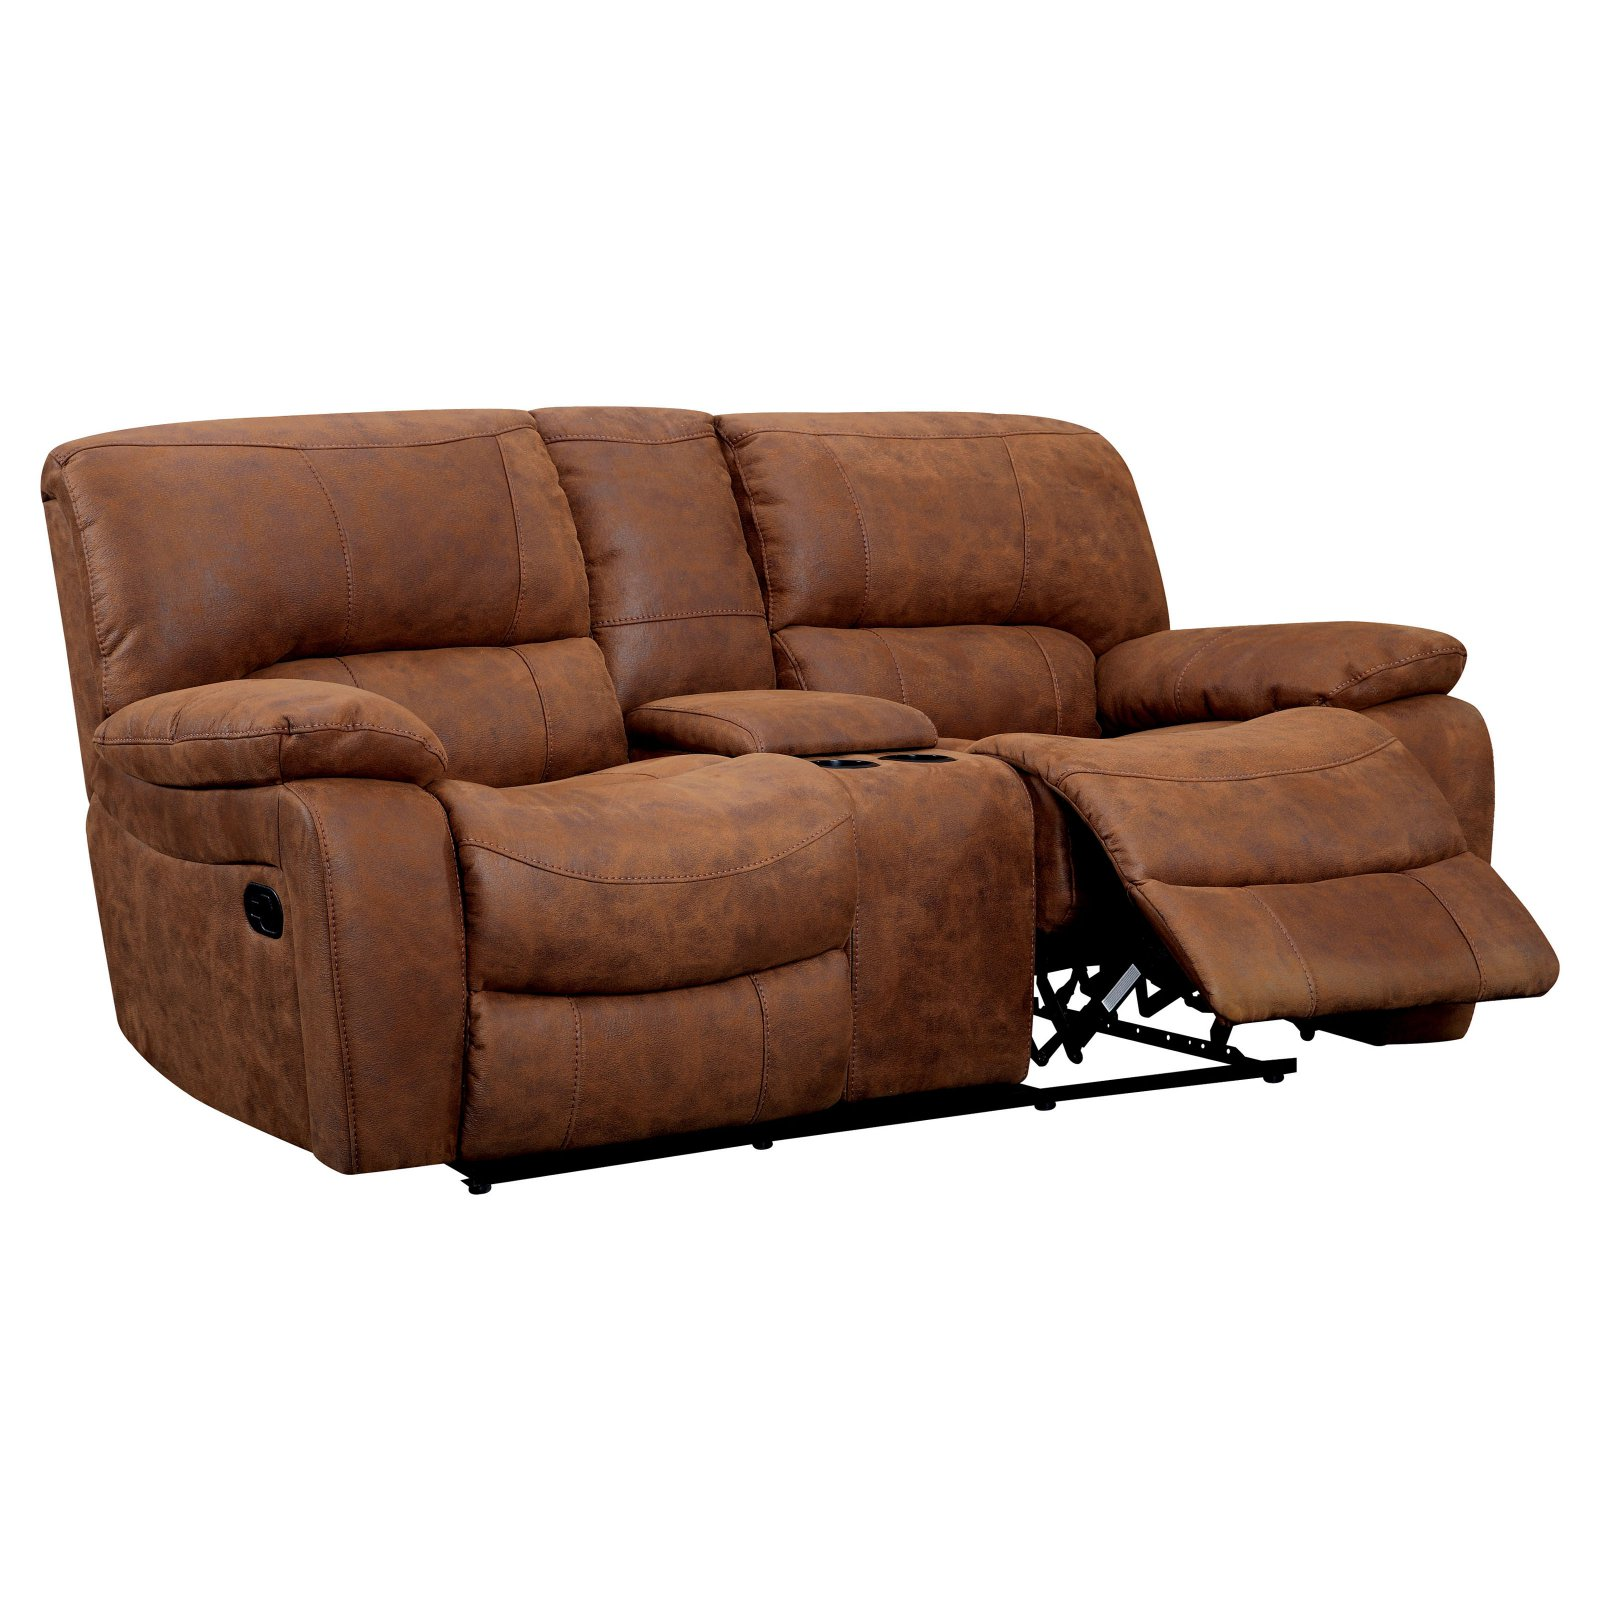 Furniture of America Lafrance Recliner Loveseat with Center Console